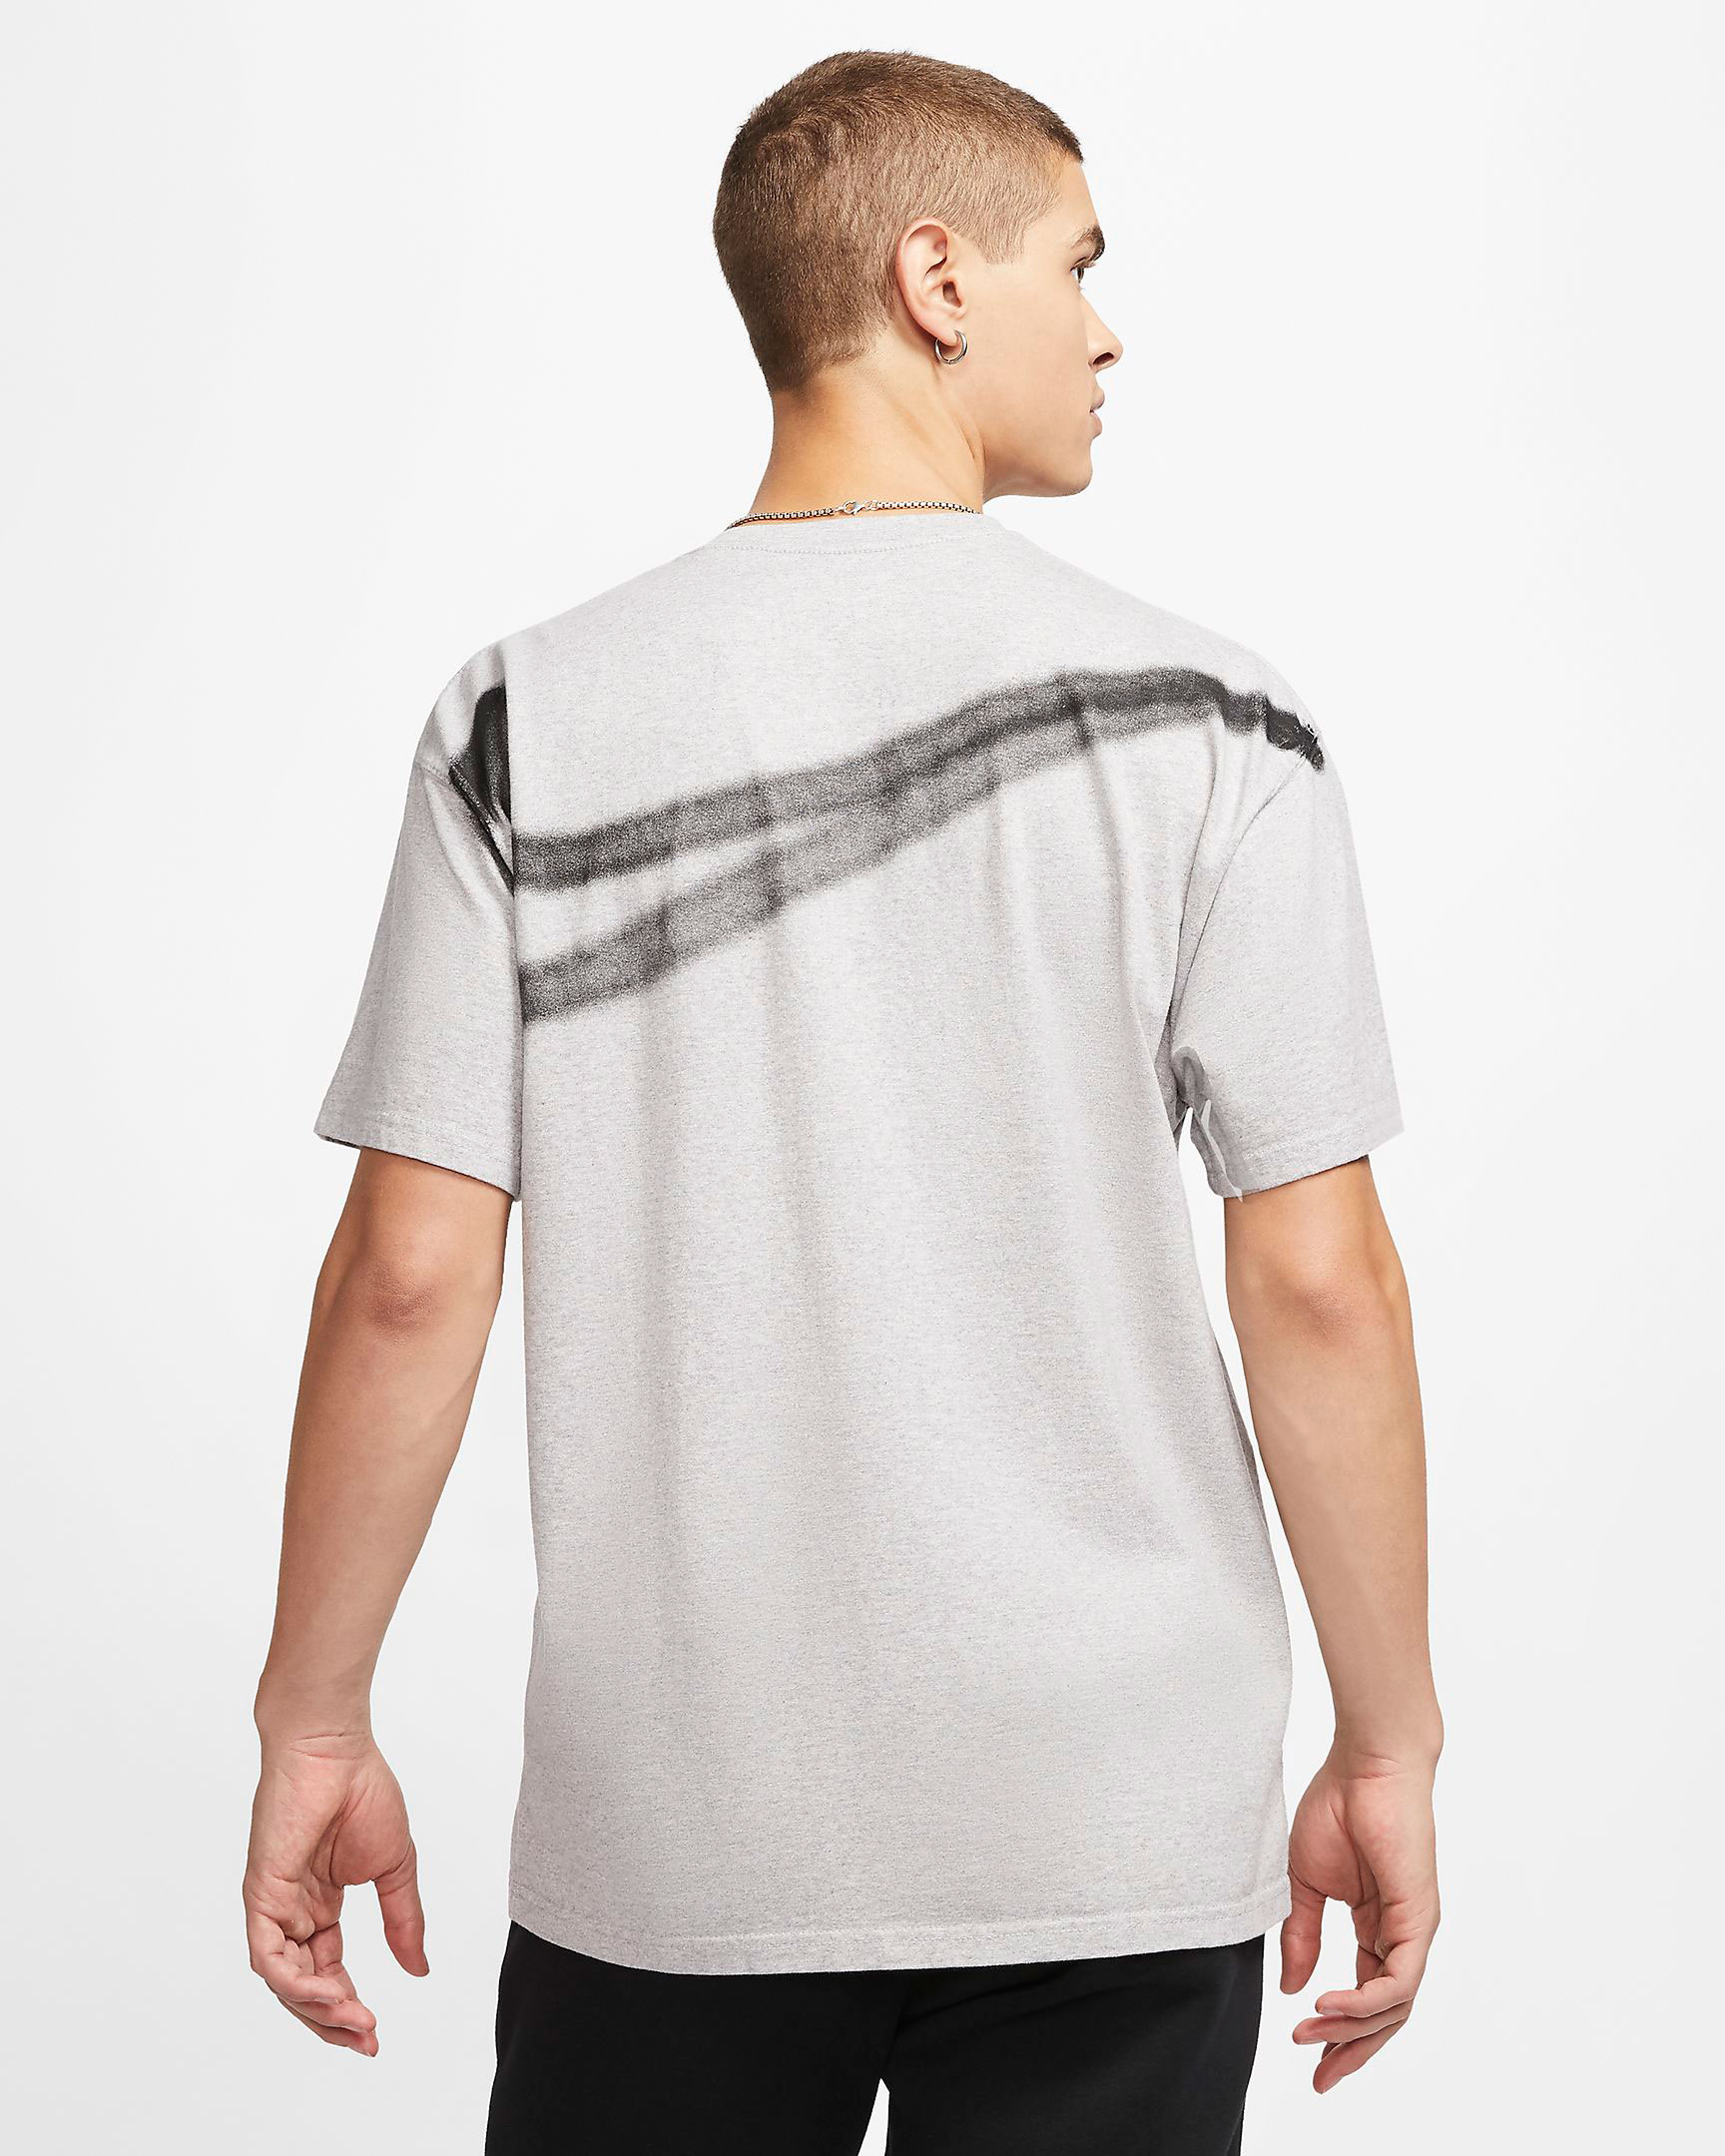 nike-space-hippie-just-do-it-shirt-3